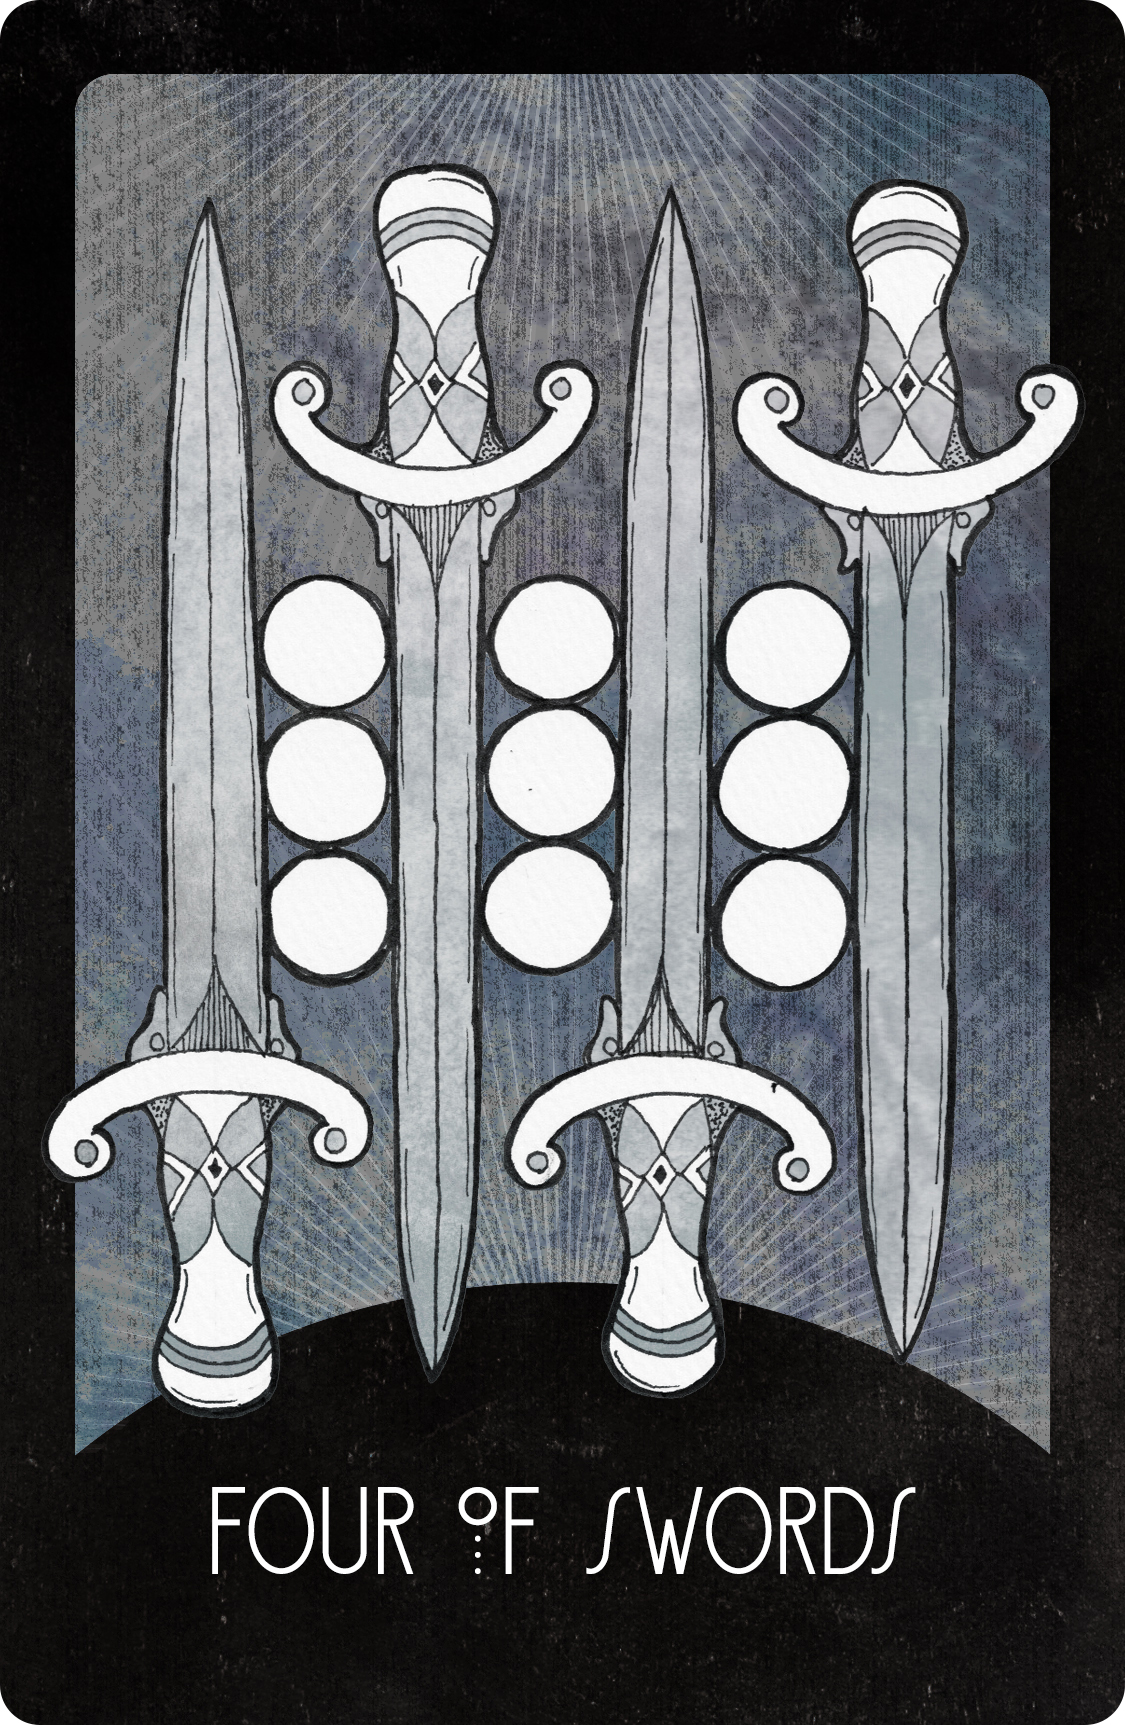 Inspirational Tarot Deck Four of Swords